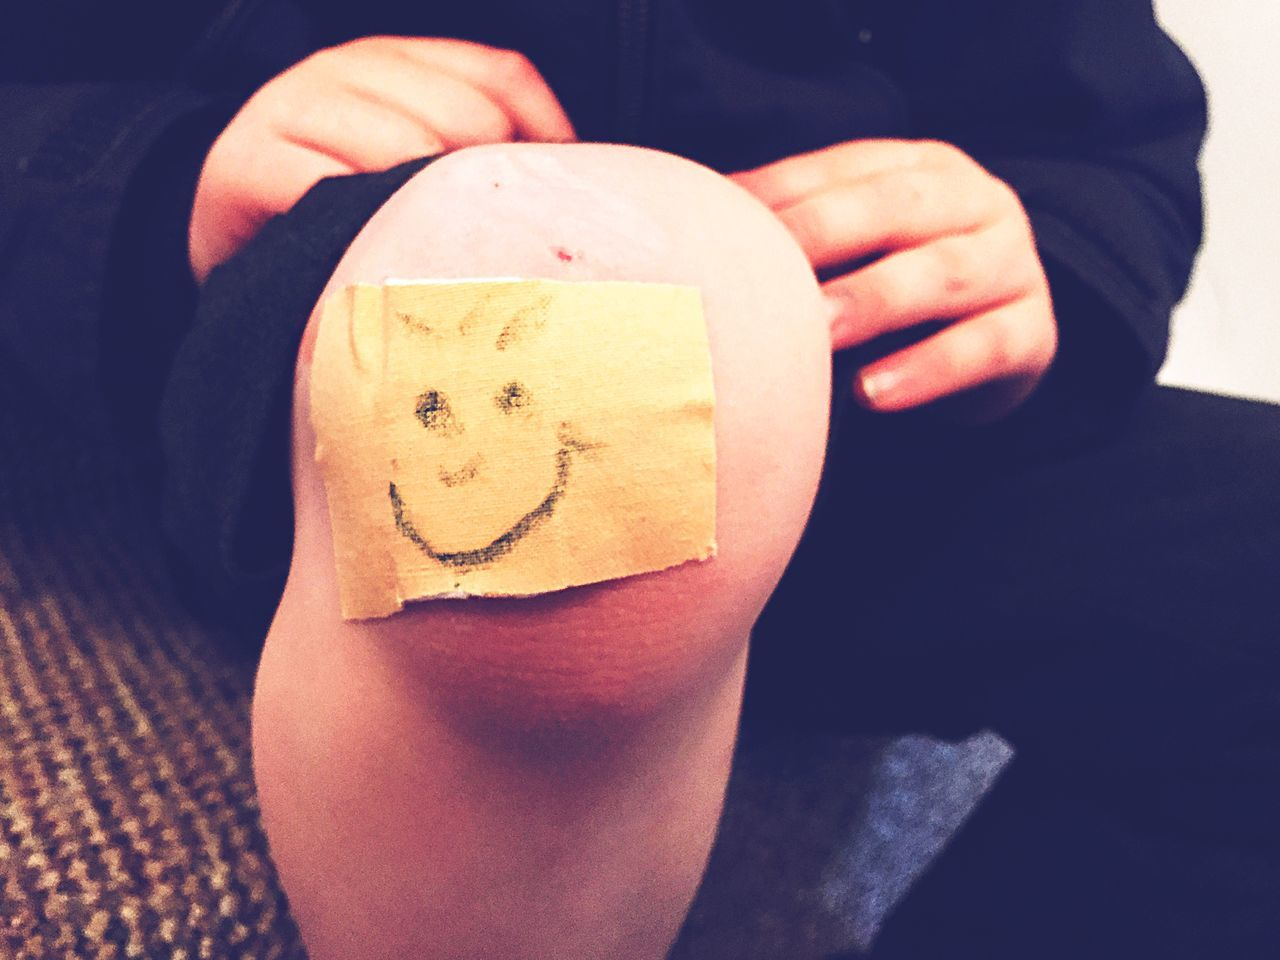 Sore Knee Plaster Smiley Face Child Childhood Grazed Knee